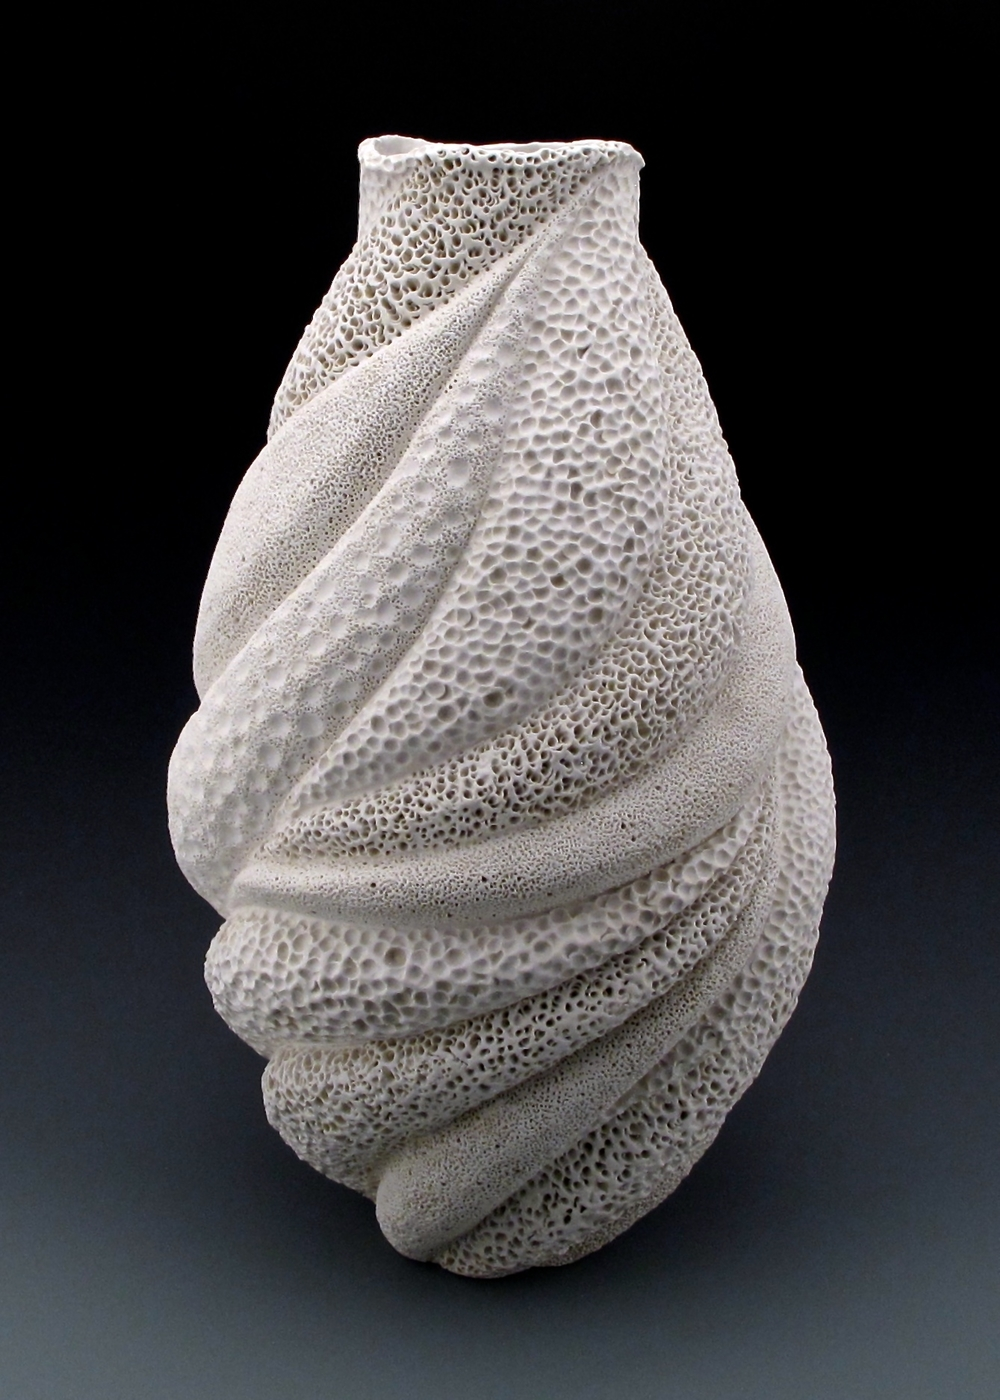 Creamy White Coastal Coral Collage large Vessel 1